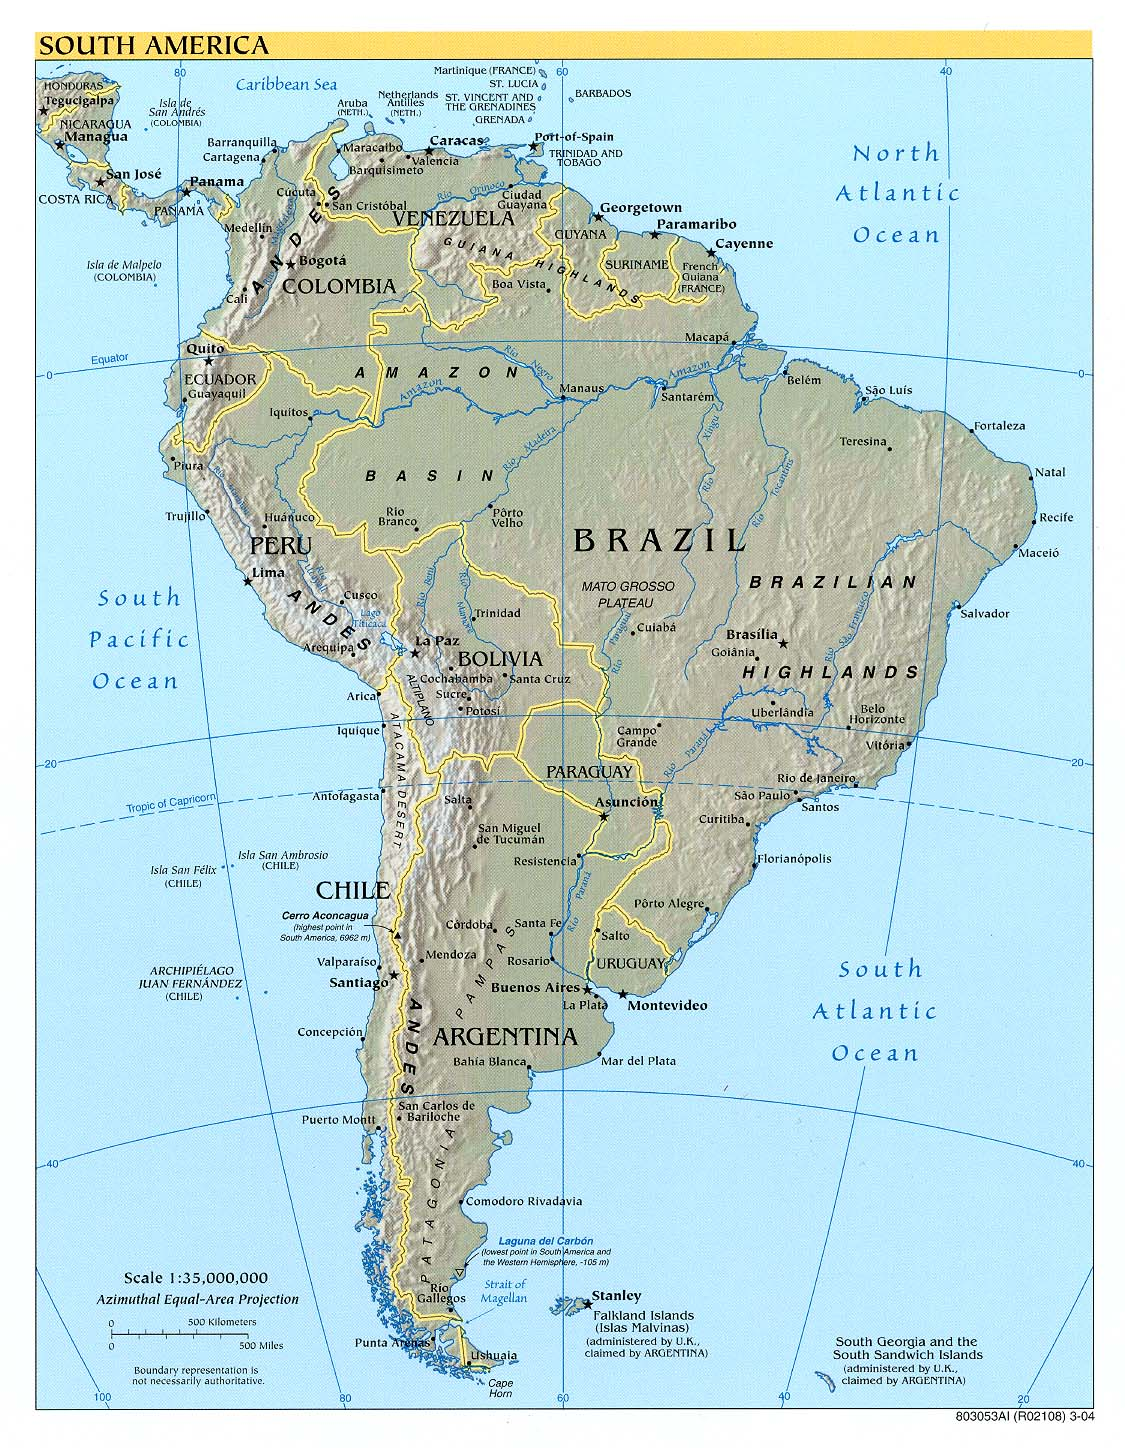 South America physical map 2004